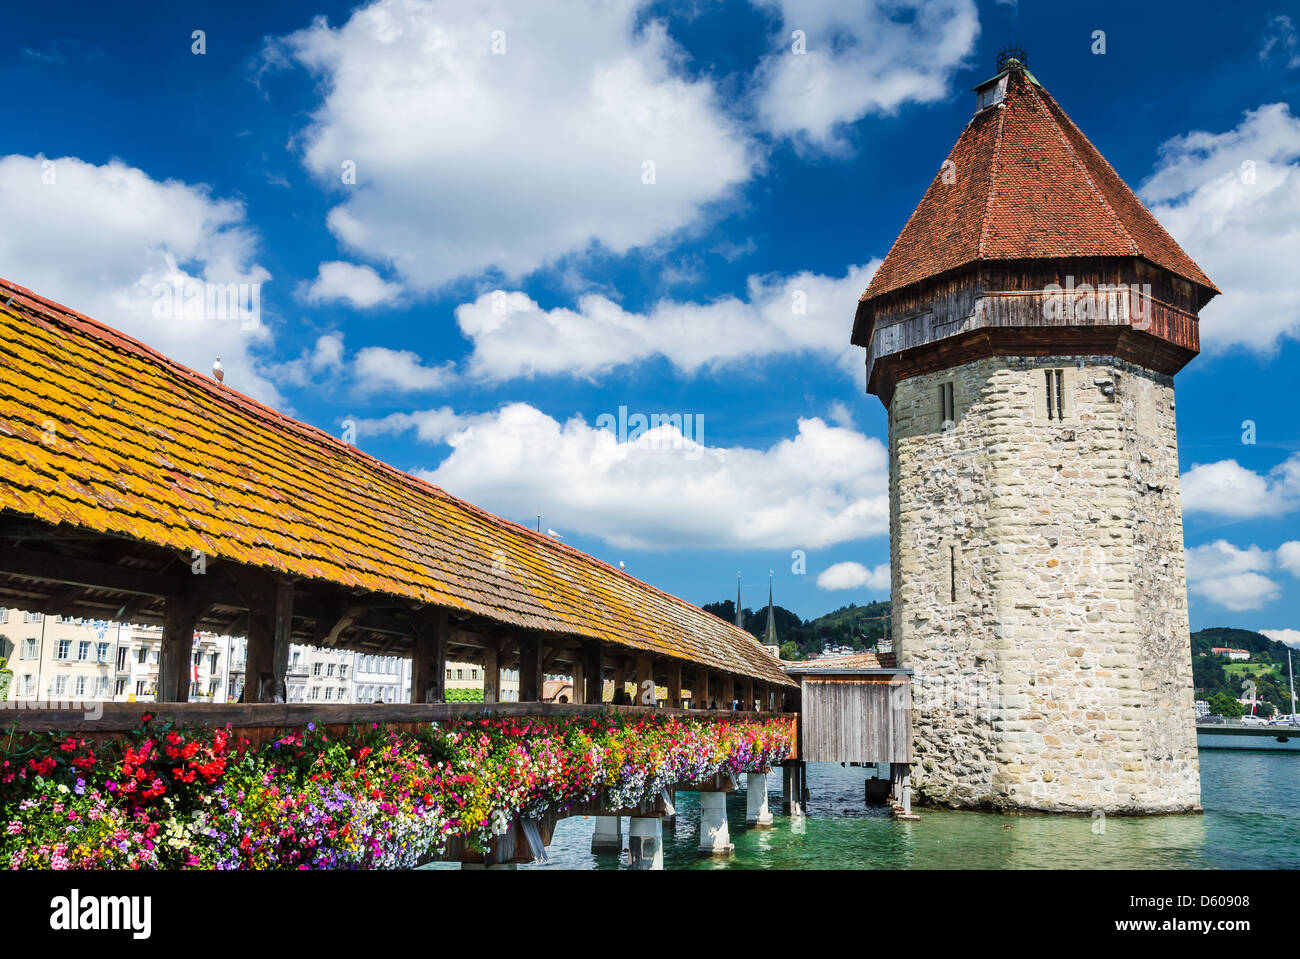 A view of the famous wooden Chapel Bridge of Luzern, Lucerne in Switzerland, with the tower in foreground - Stock Image